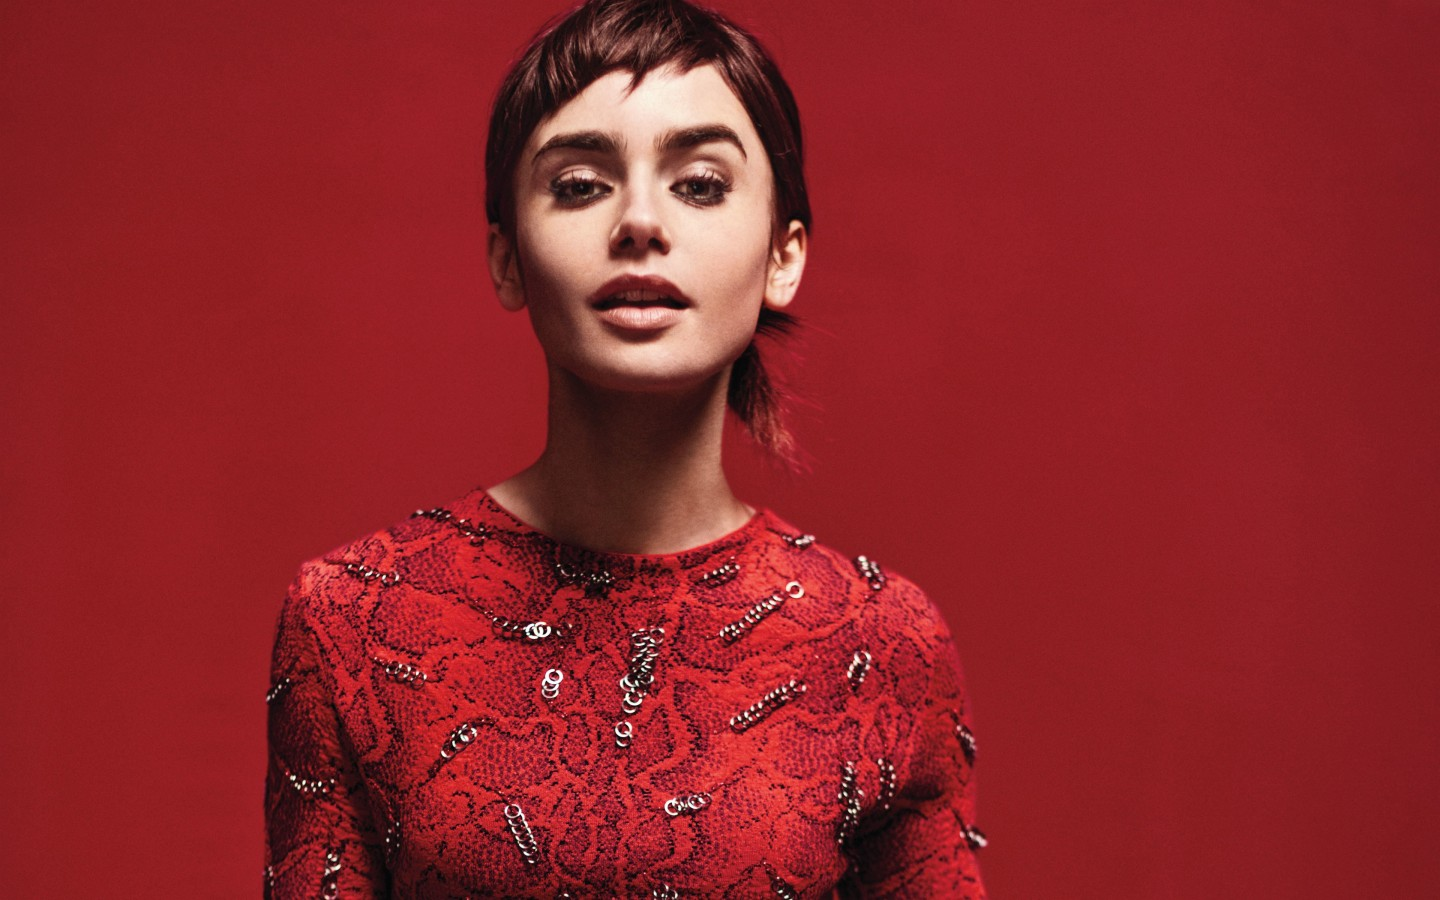 3d Wallpaper For Ipad Retina Lily Collins 2018 4k Wallpapers Hd Wallpapers Id 23062